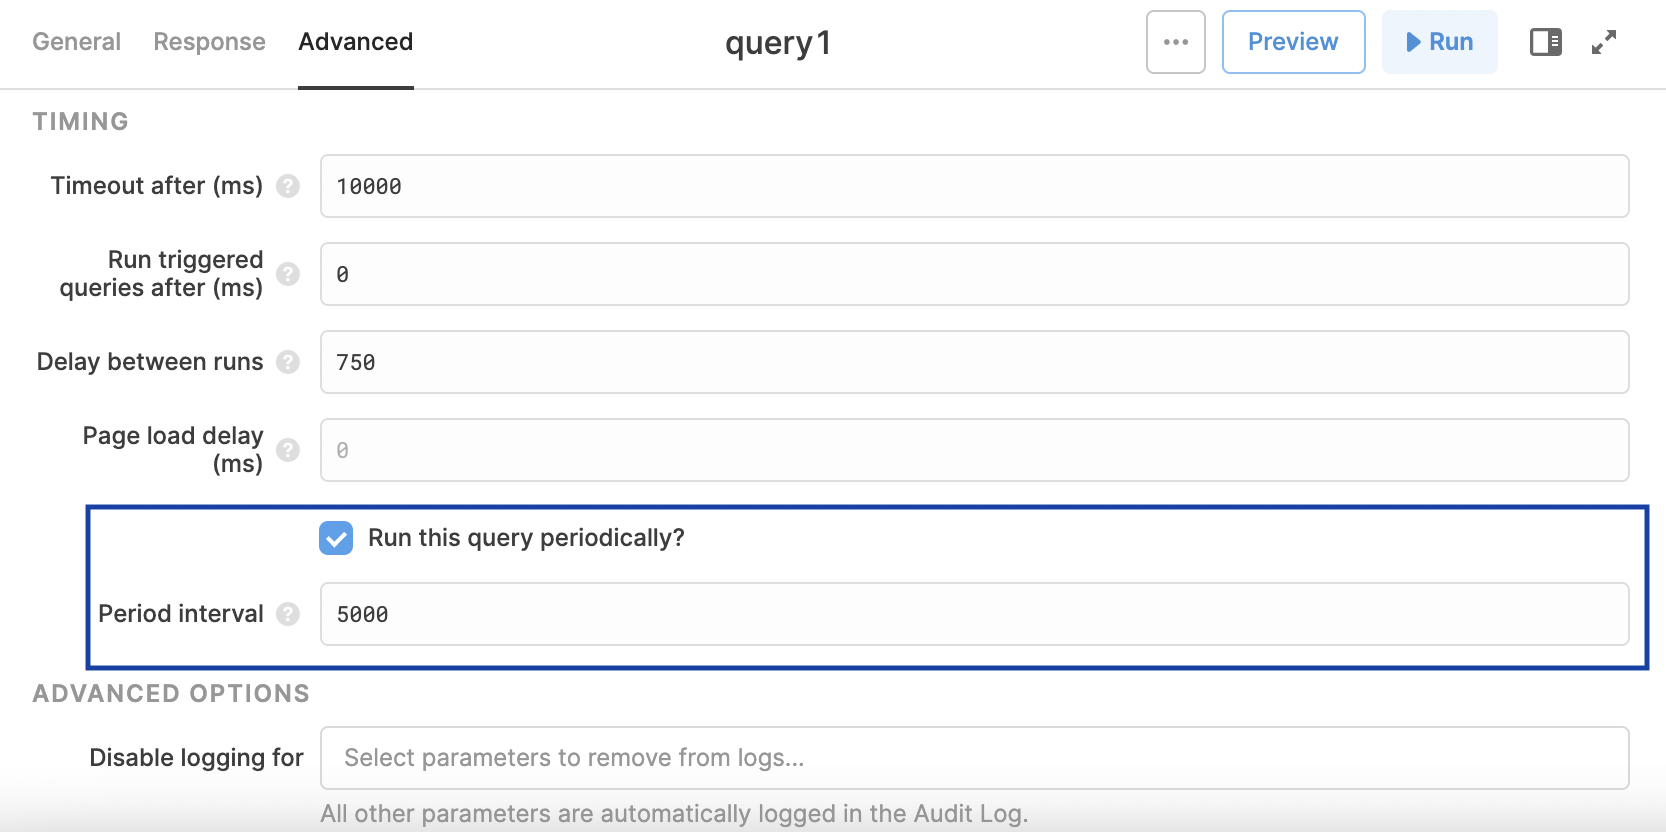 Example of a query refreshing every 5 seconds (5000 milliseconds)